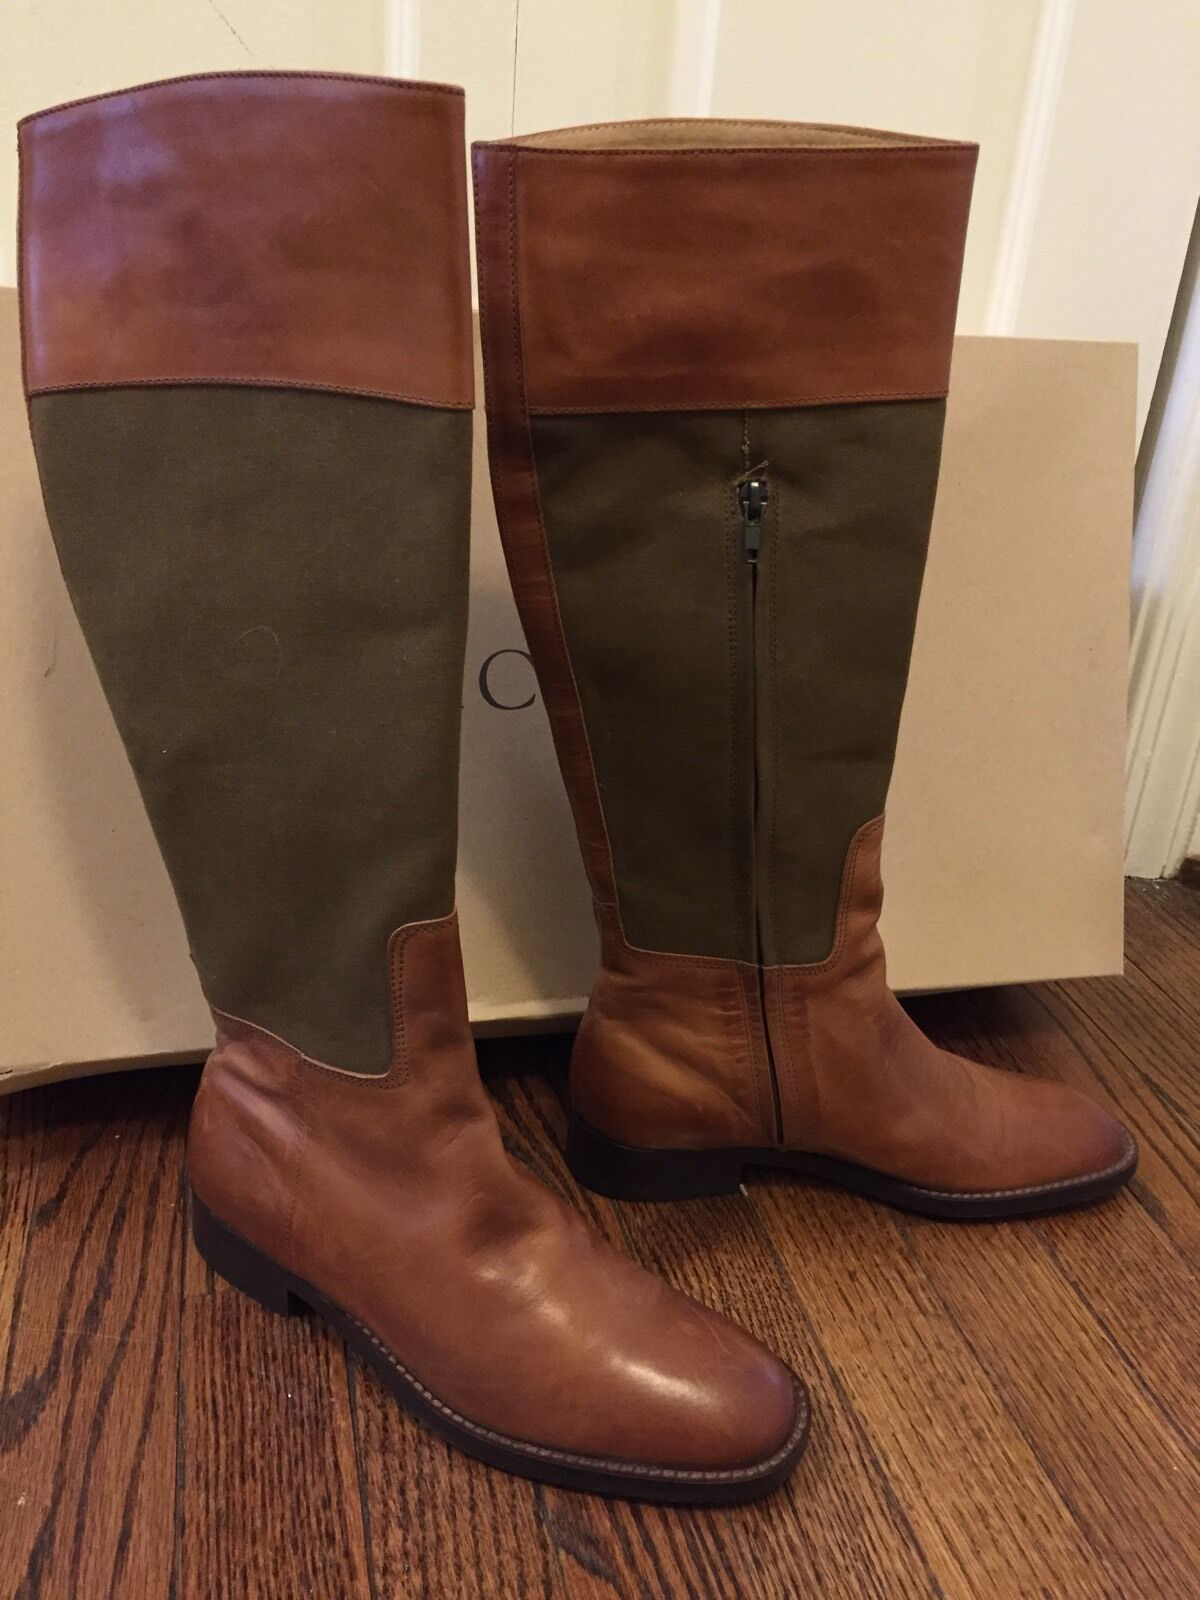 J. Crew Knee High Boots Size 5.5 Retail  358 Brand new